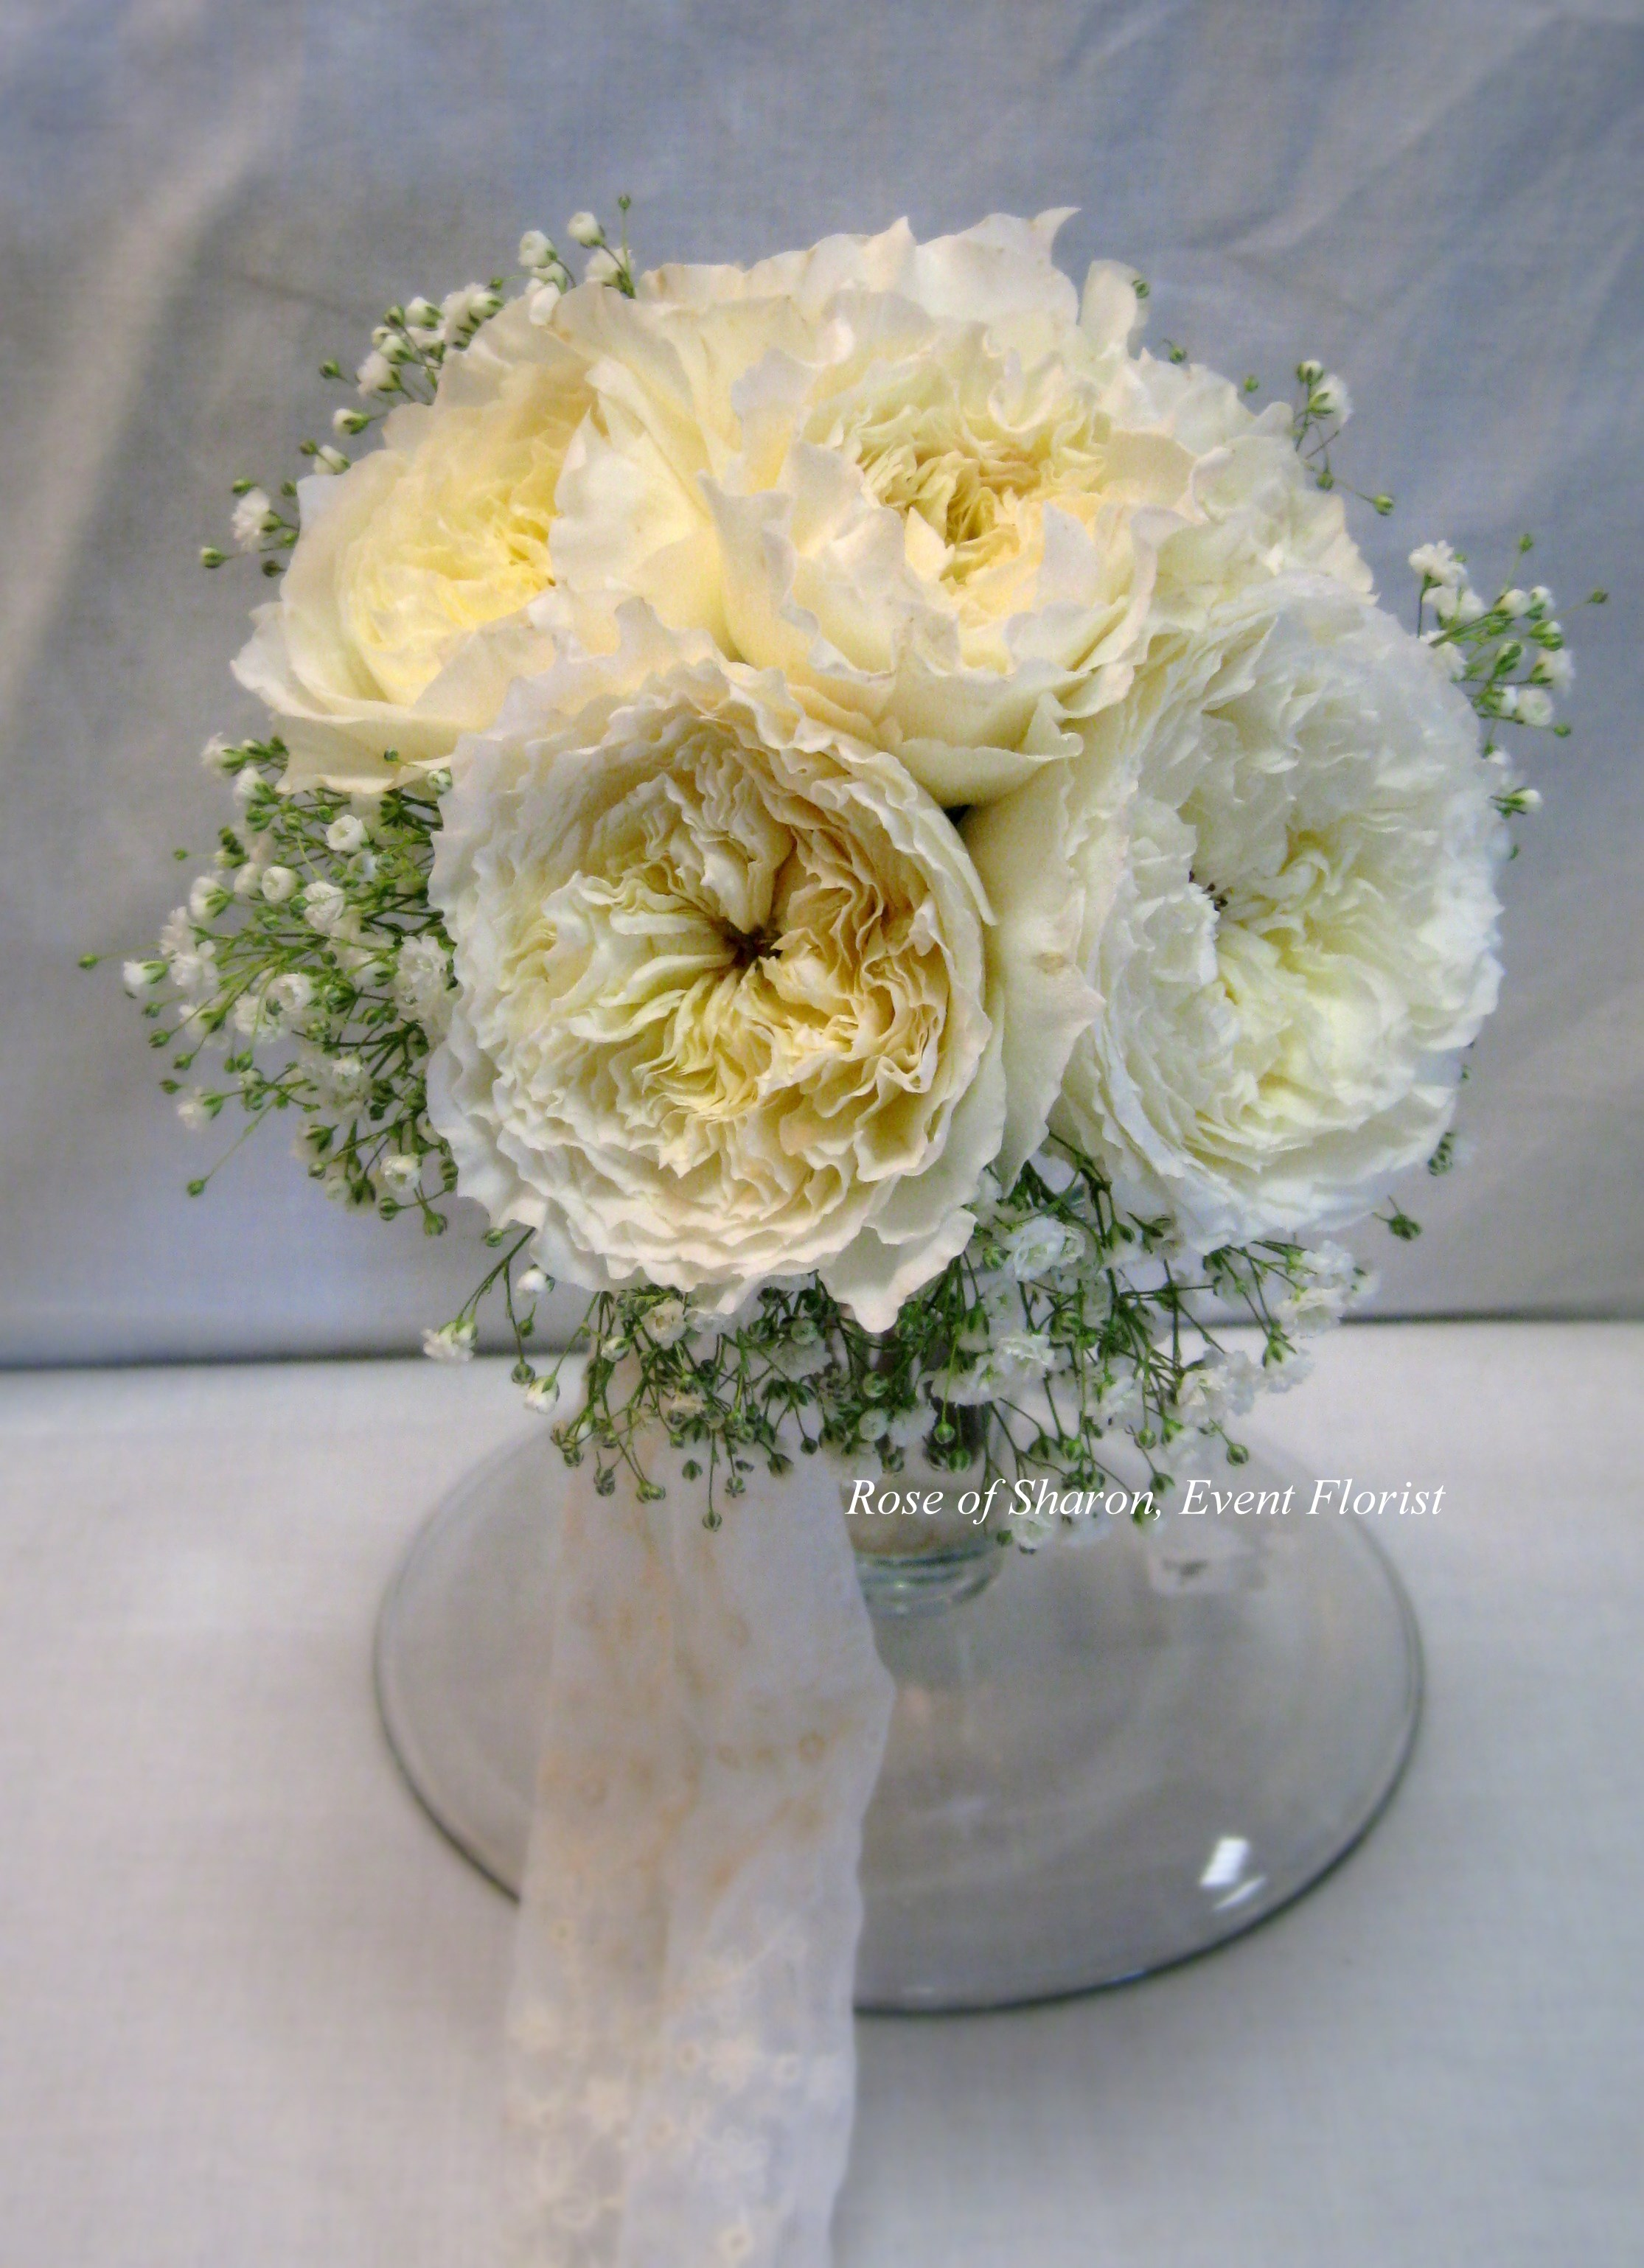 Hand-Tied Bouquet. White Garden Roses and Baby's Breath. Rose of Sharon Floral Designs